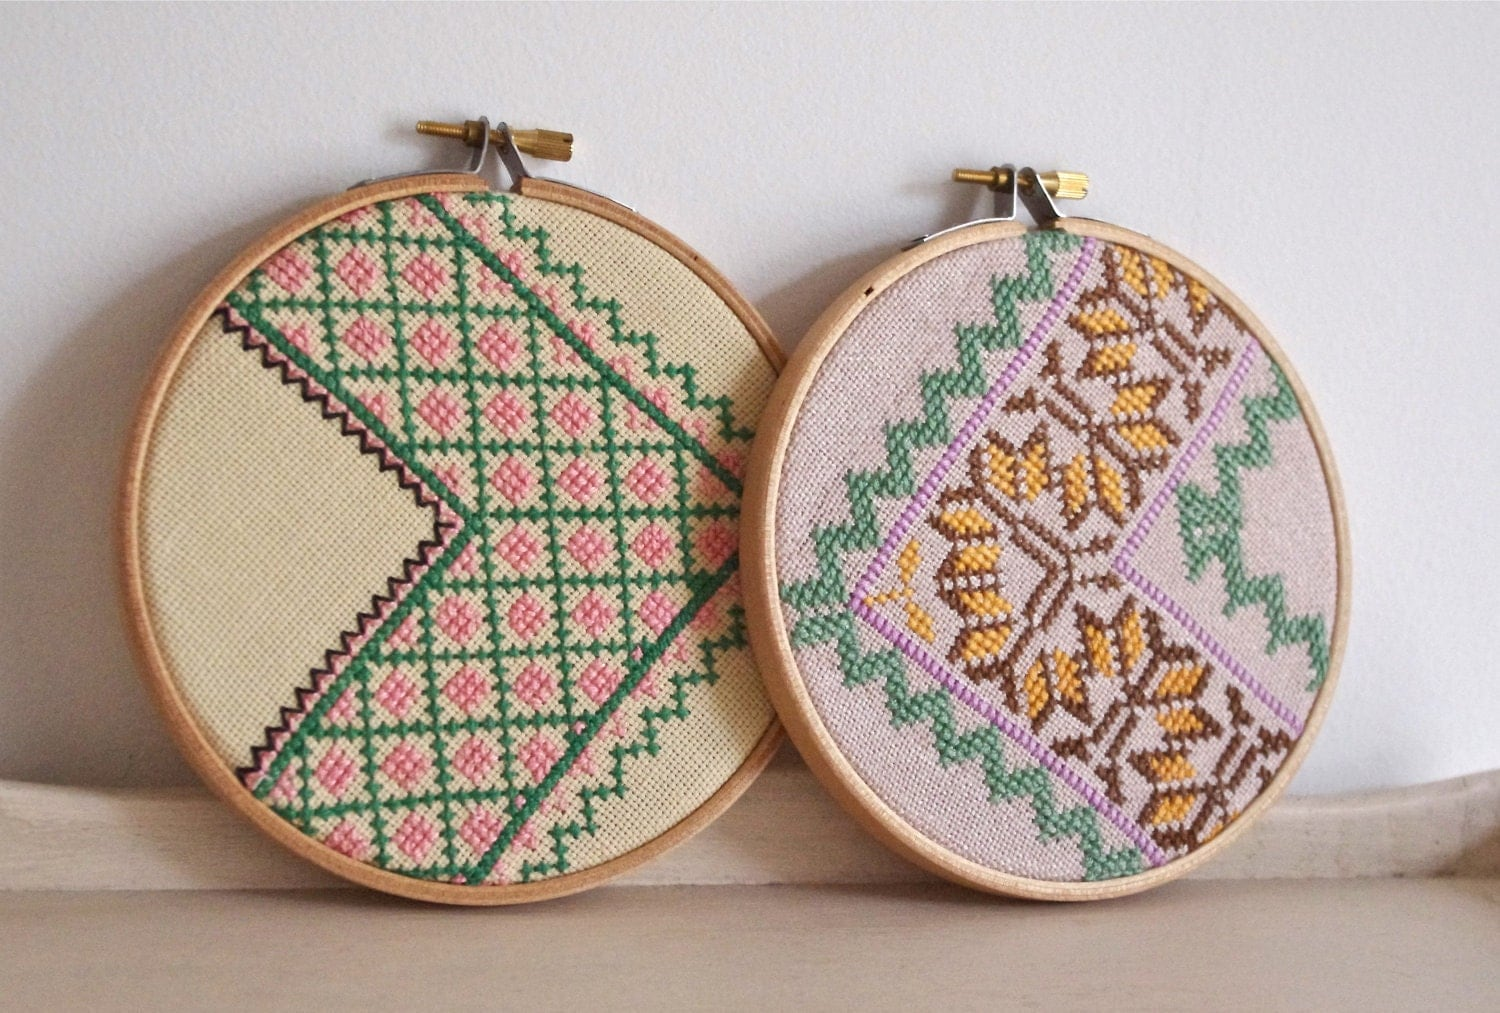 Pair of vintage embroidered zig zag wall art hoops by